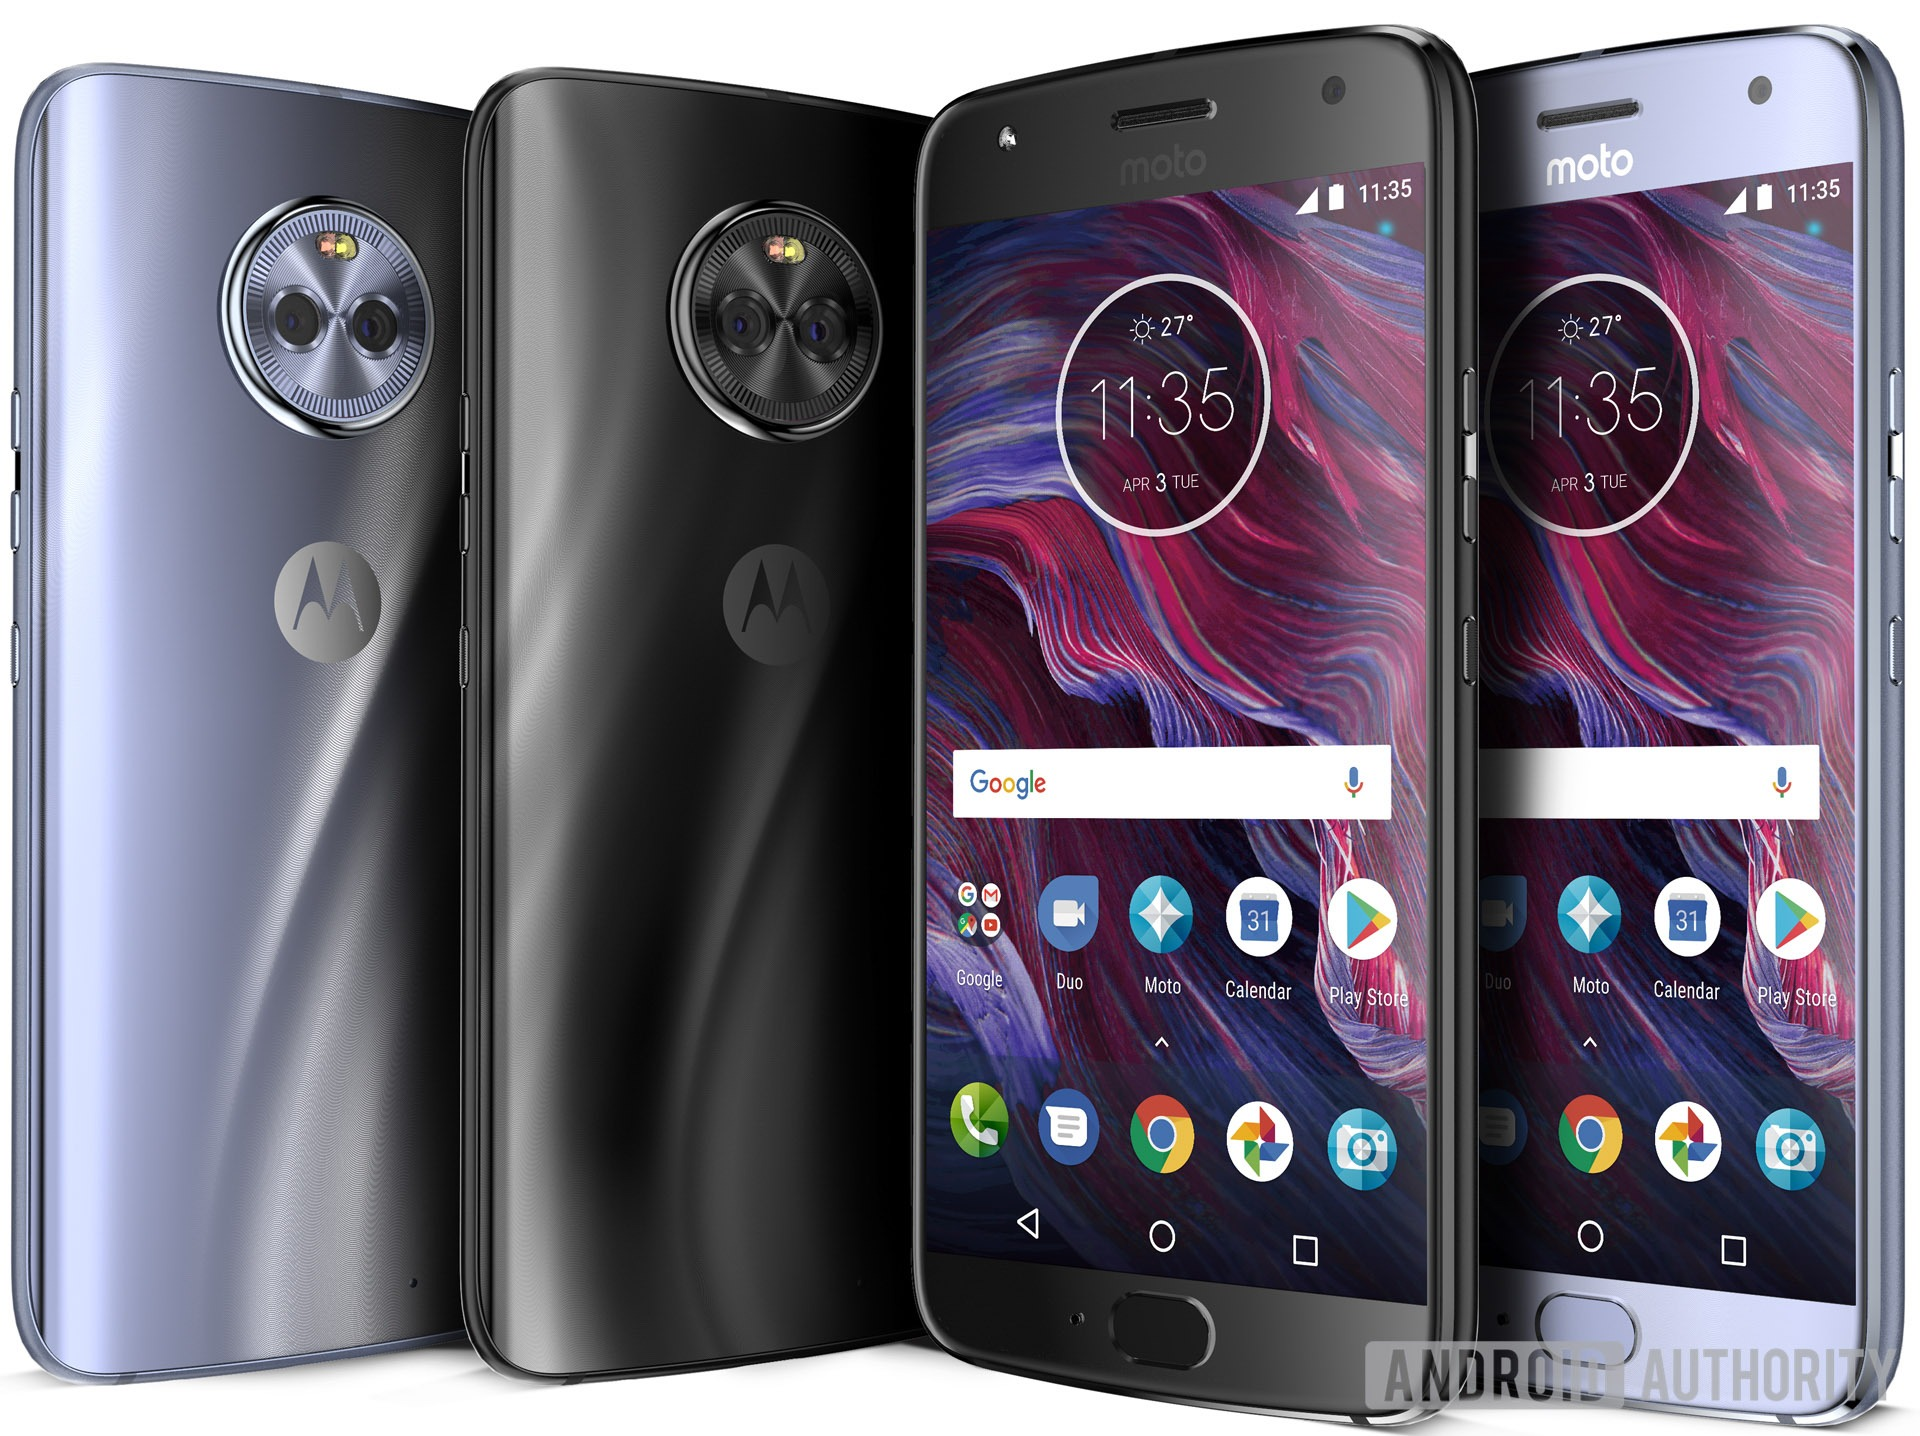 [OFFICIAL] Download Moto X4 Wallpaper in High Quality